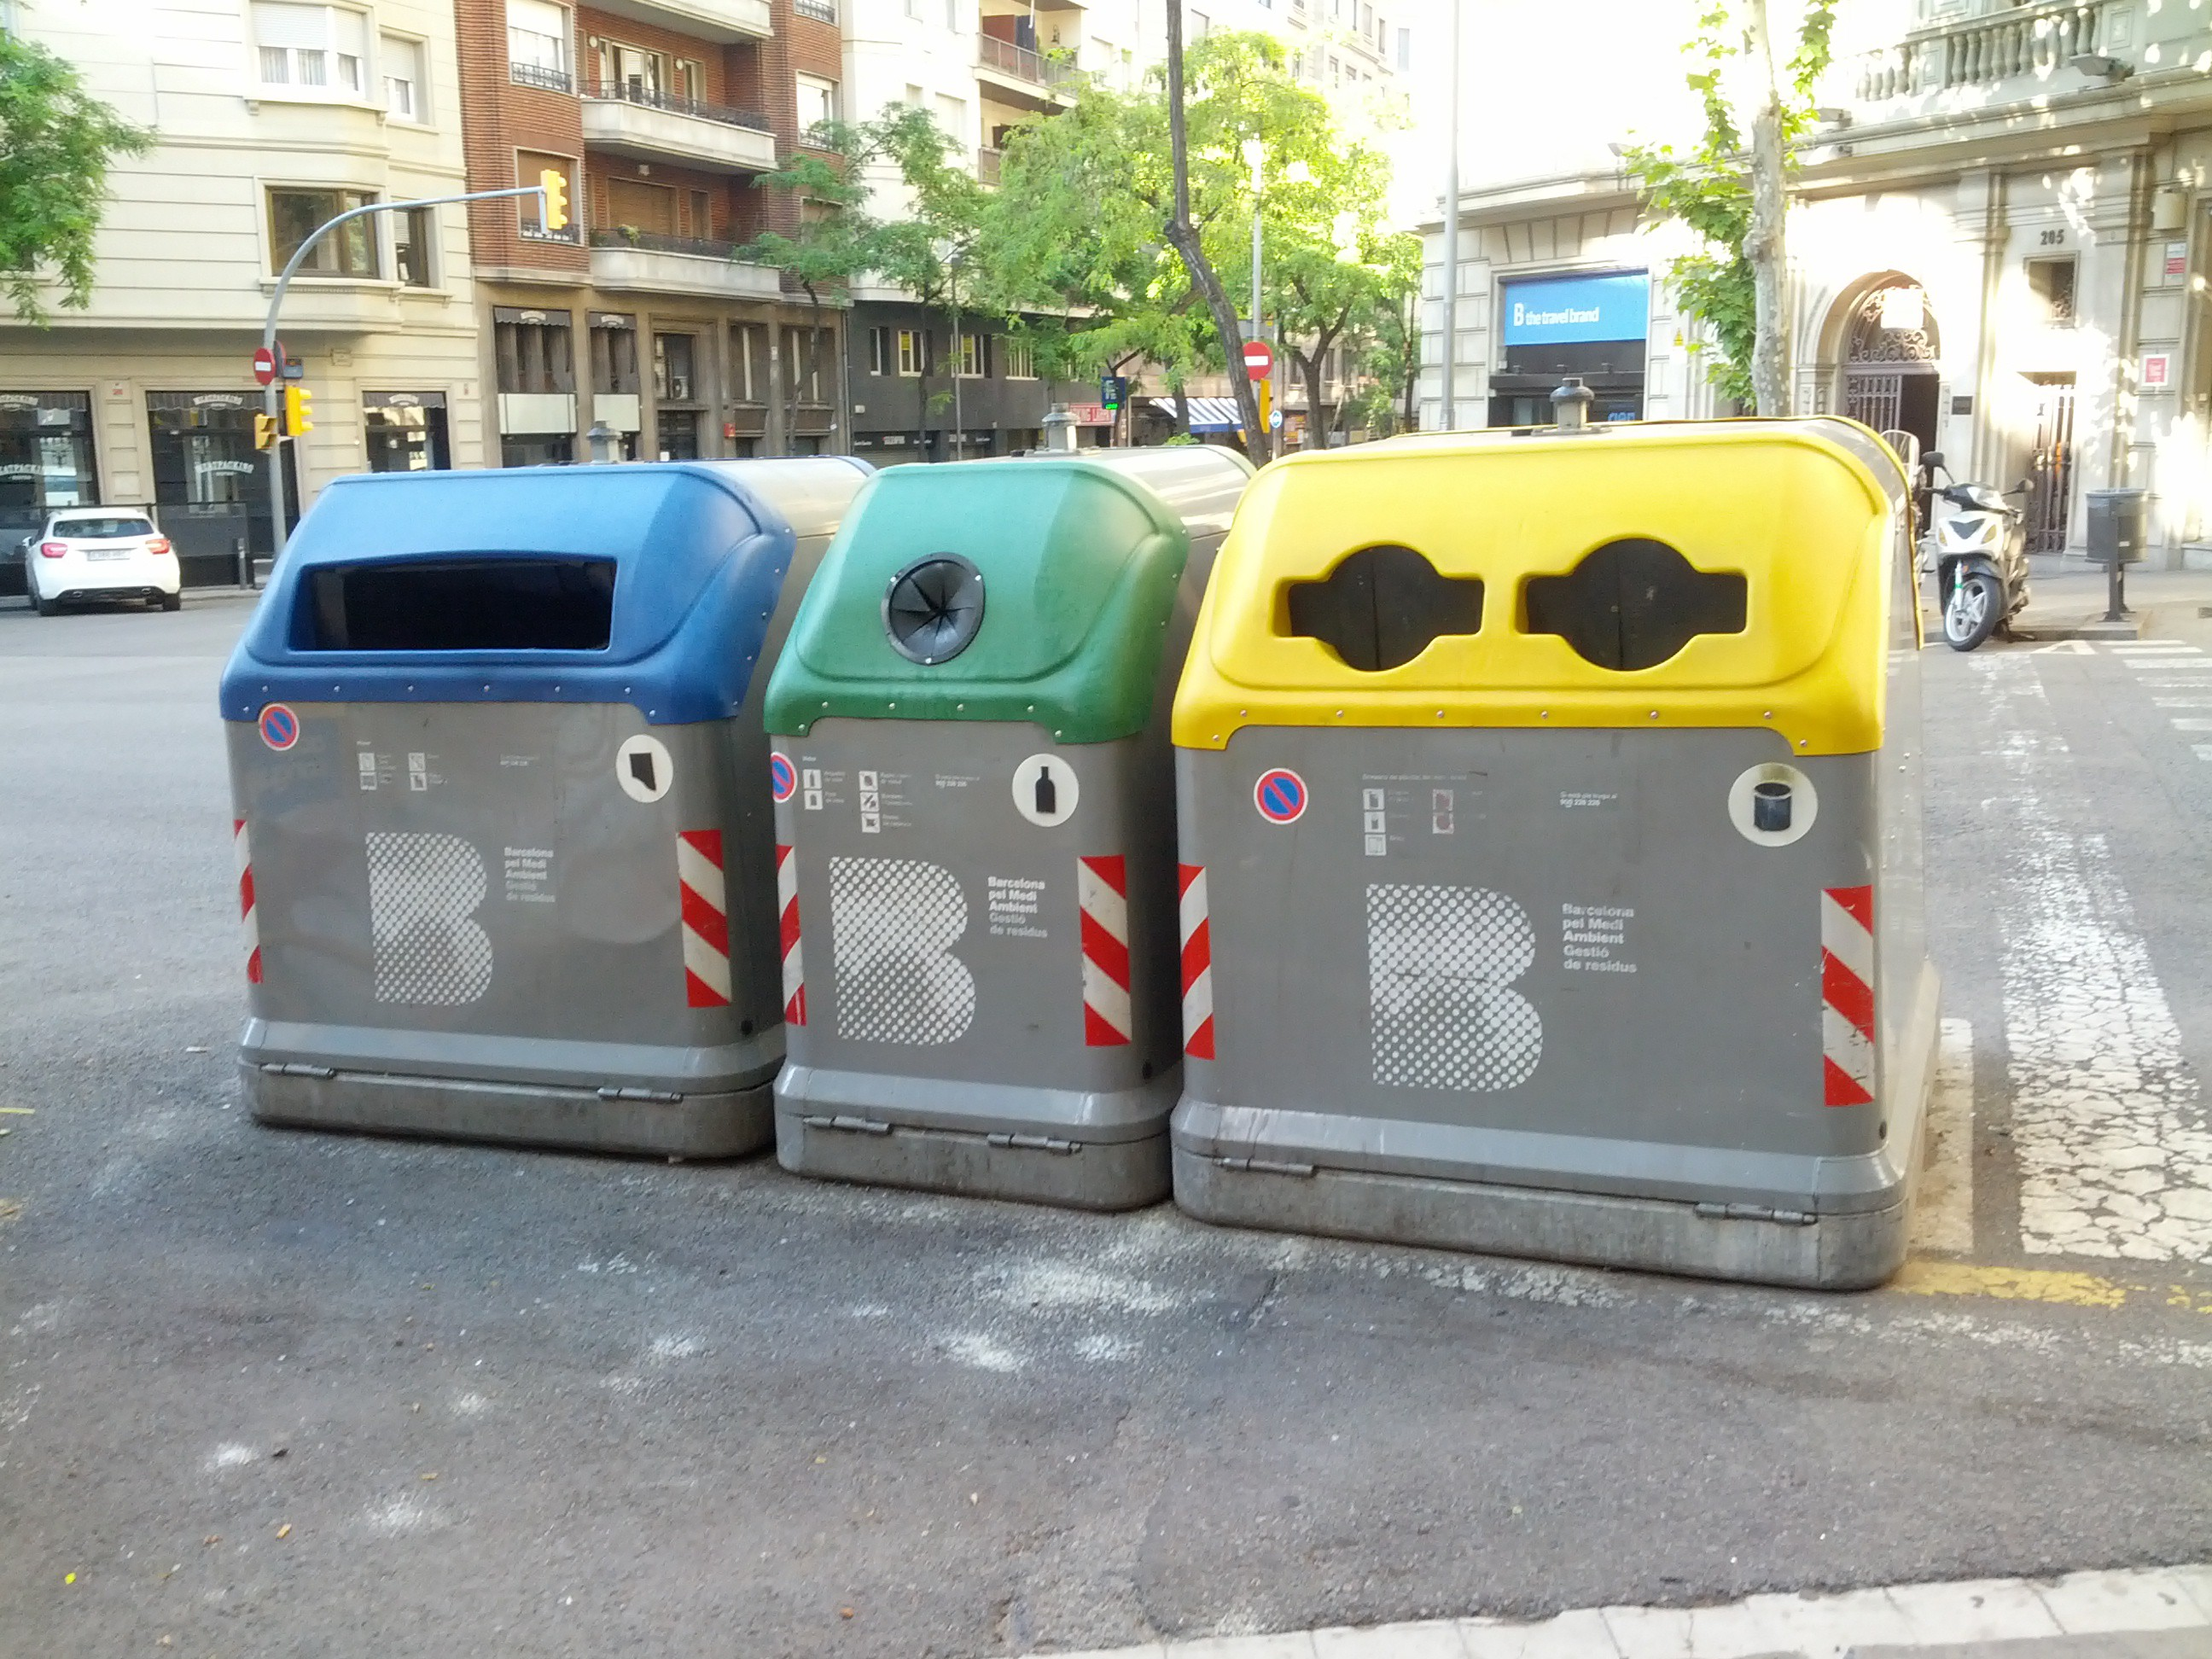 Three waste bins on the streets of Barcelona. These bins have sensors that alert city officials when they've been emptied.